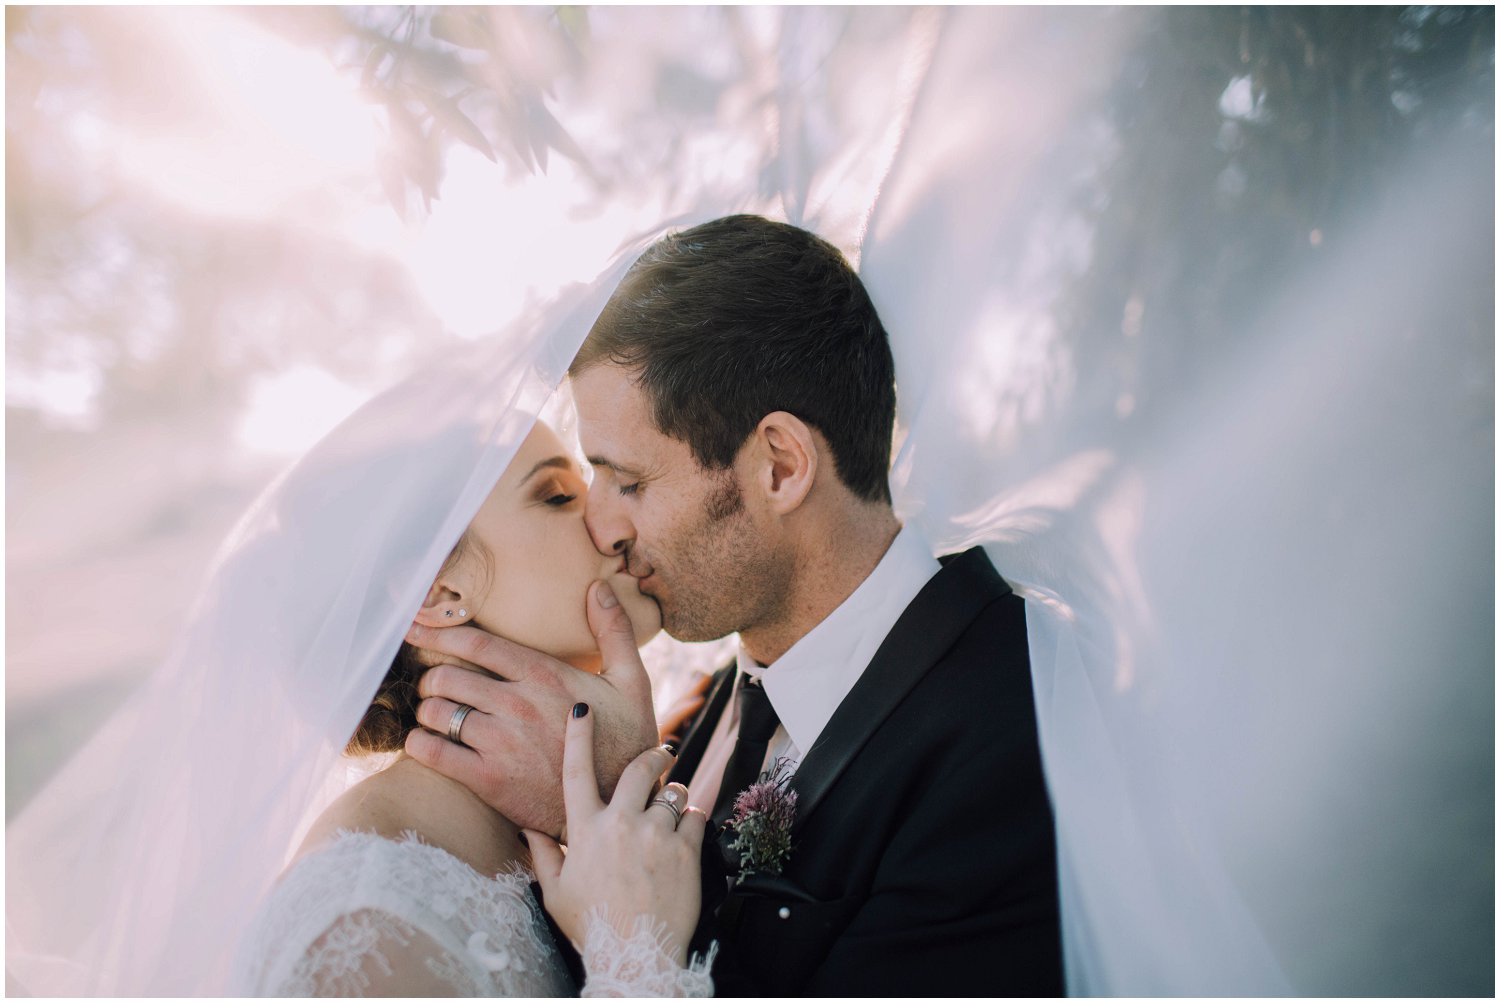 Top Wedding Photographer Cape Town South Africa Artistic Creative Documentary Wedding Photography Rue Kruger_1230.jpg